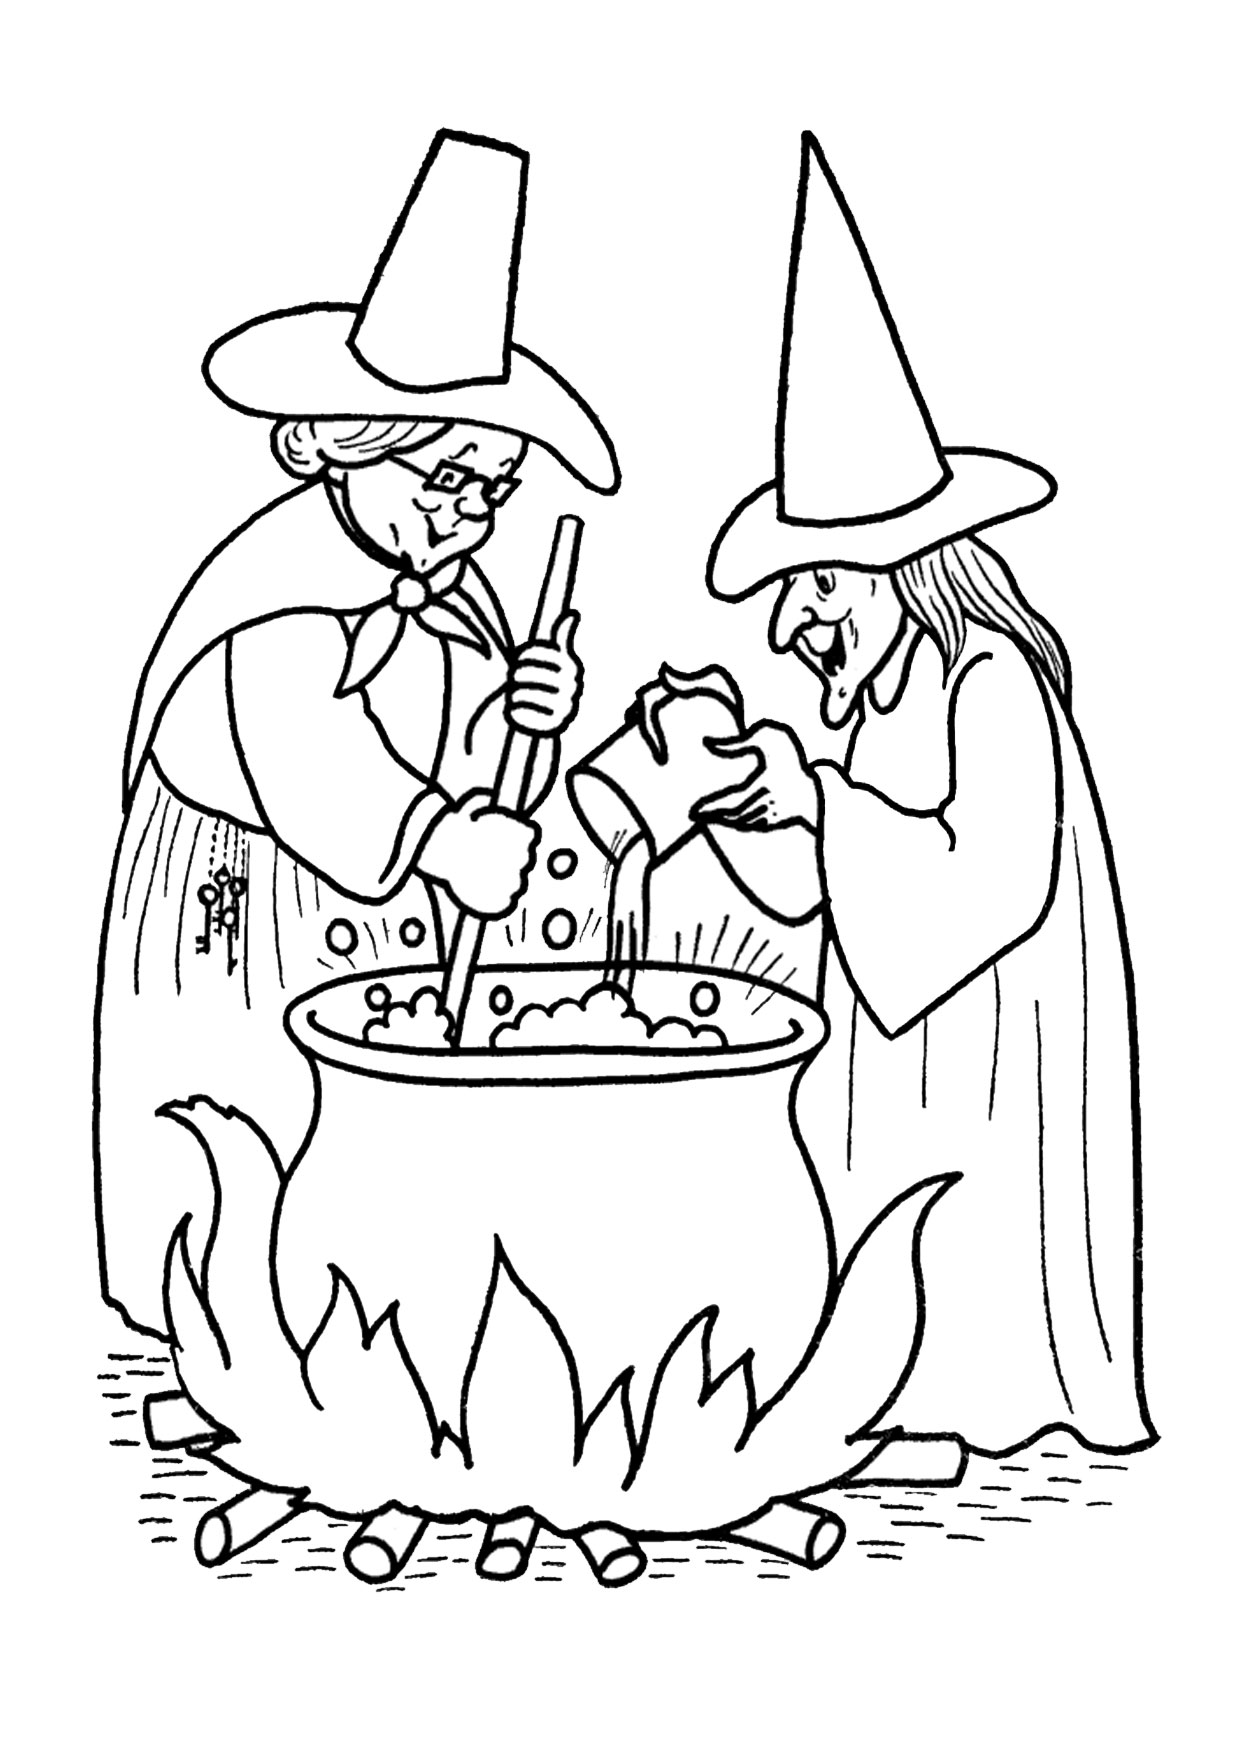 Farfalle Fiori likewise Planse Desene De Colorat Lup further I Llg Ie further Christmas Coloring Pages For Adults likewise Christmas Tree Coloring Pages For Adults. on halloween coloring pages for adults printable